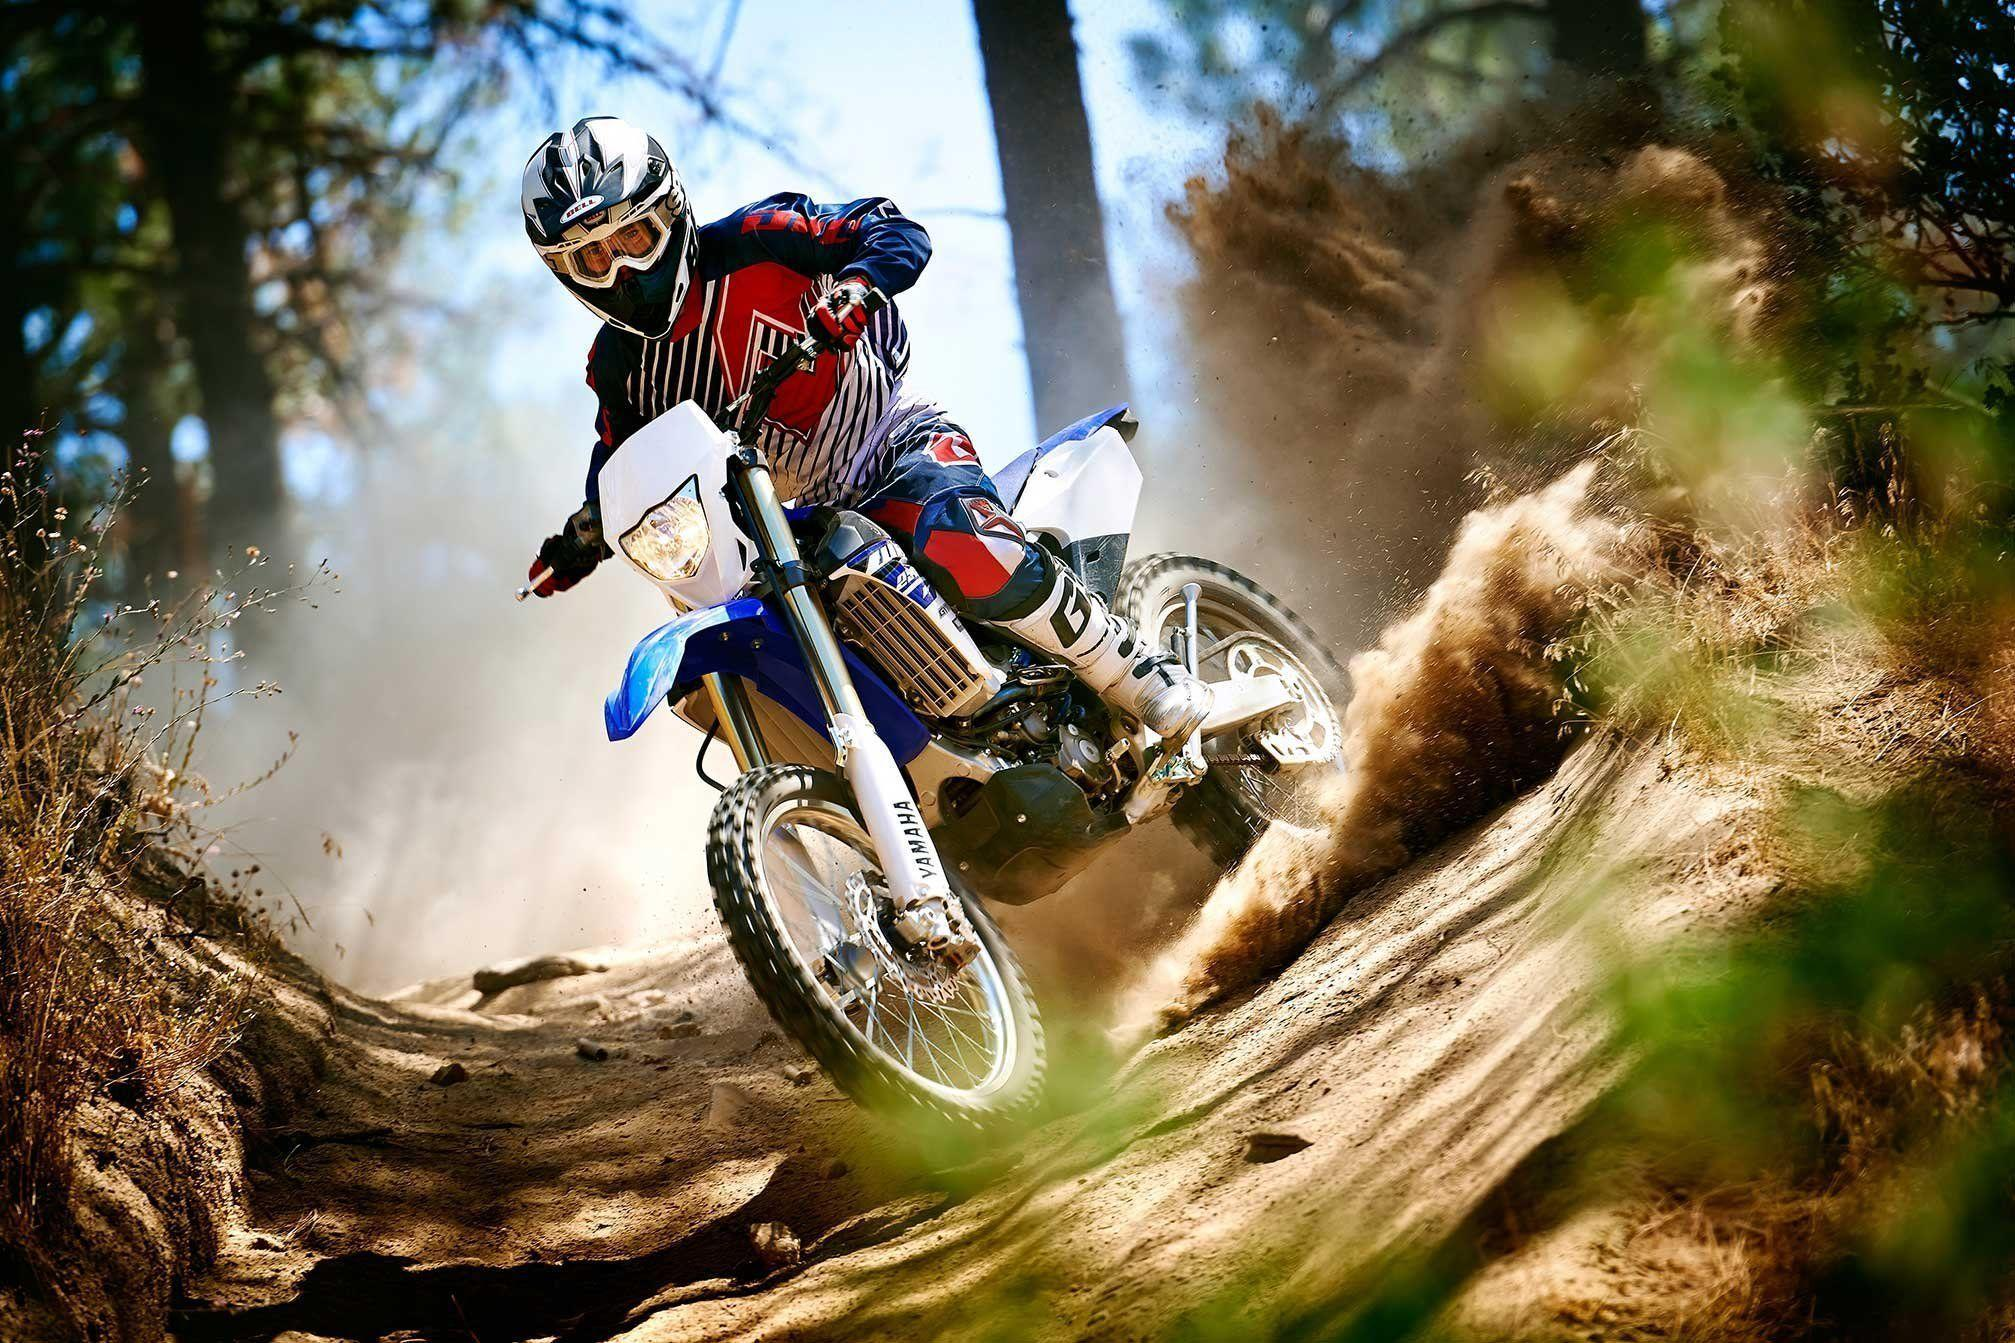 Super Cool Dirt Bike Tricks With Matthew - YouTube |Dirt Bikes Cool And Fast